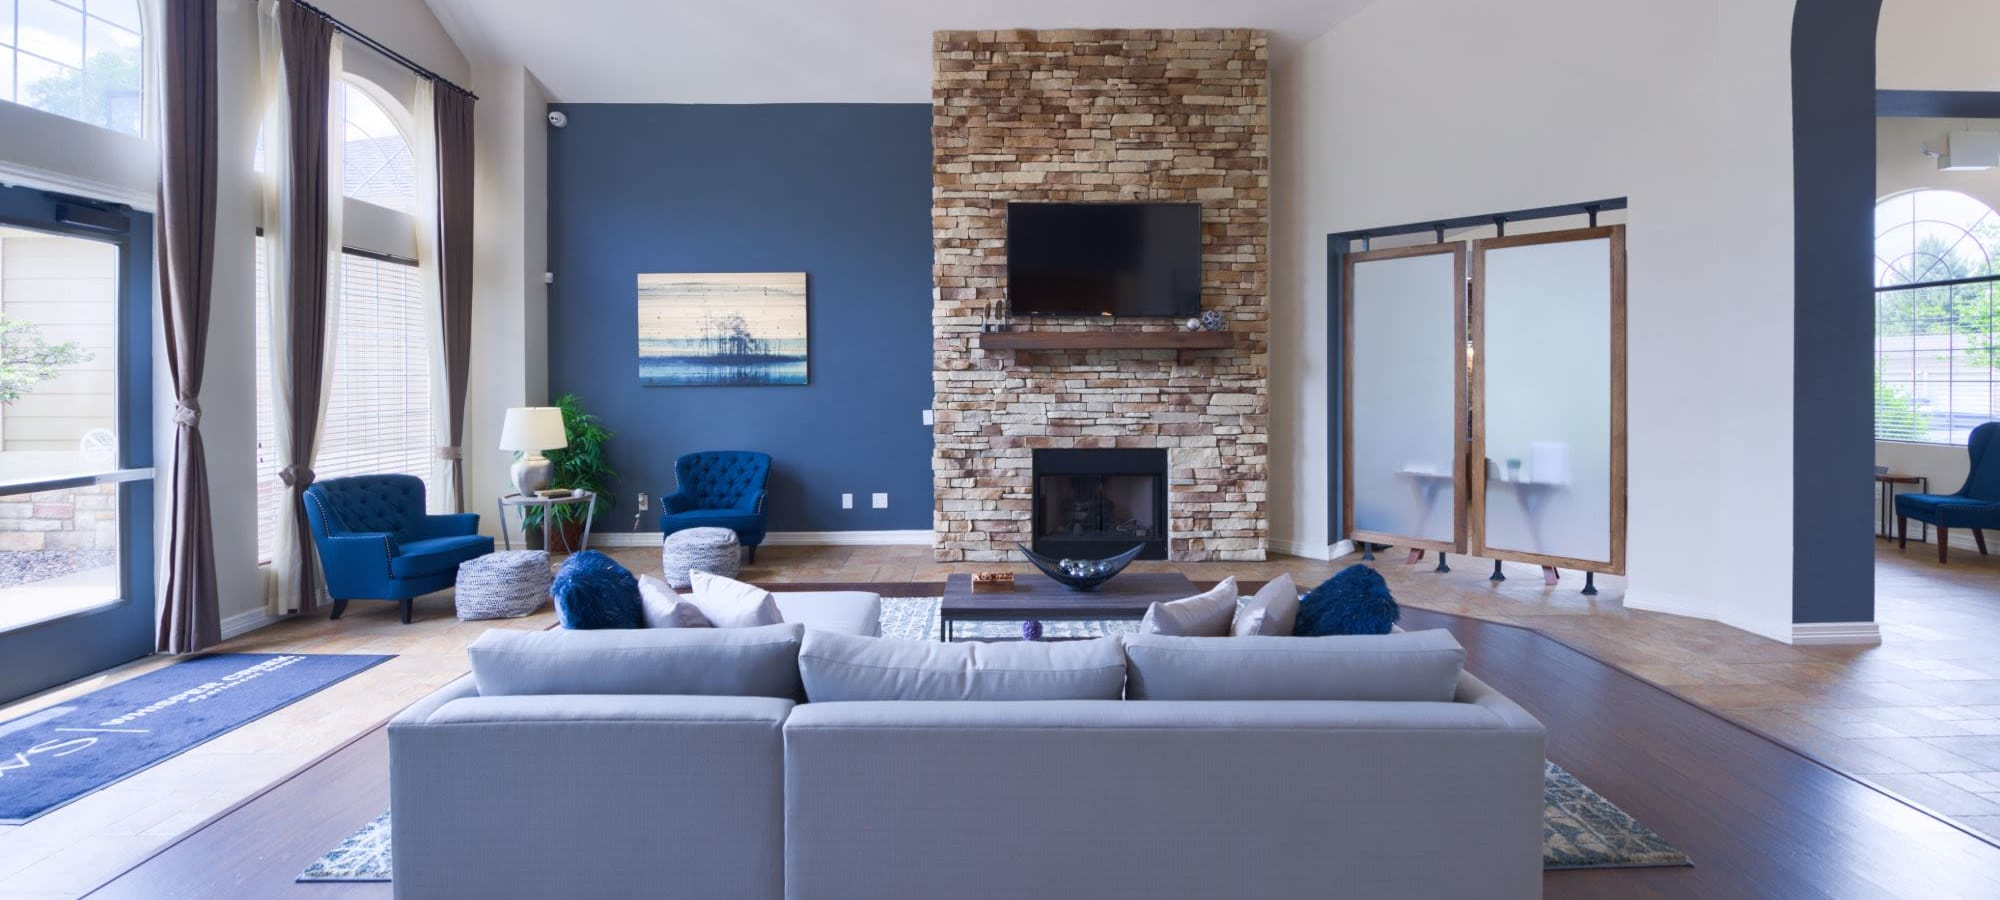 Gallery of photos for Whisper Creek Apartment Homes in Lakewood, Colorado